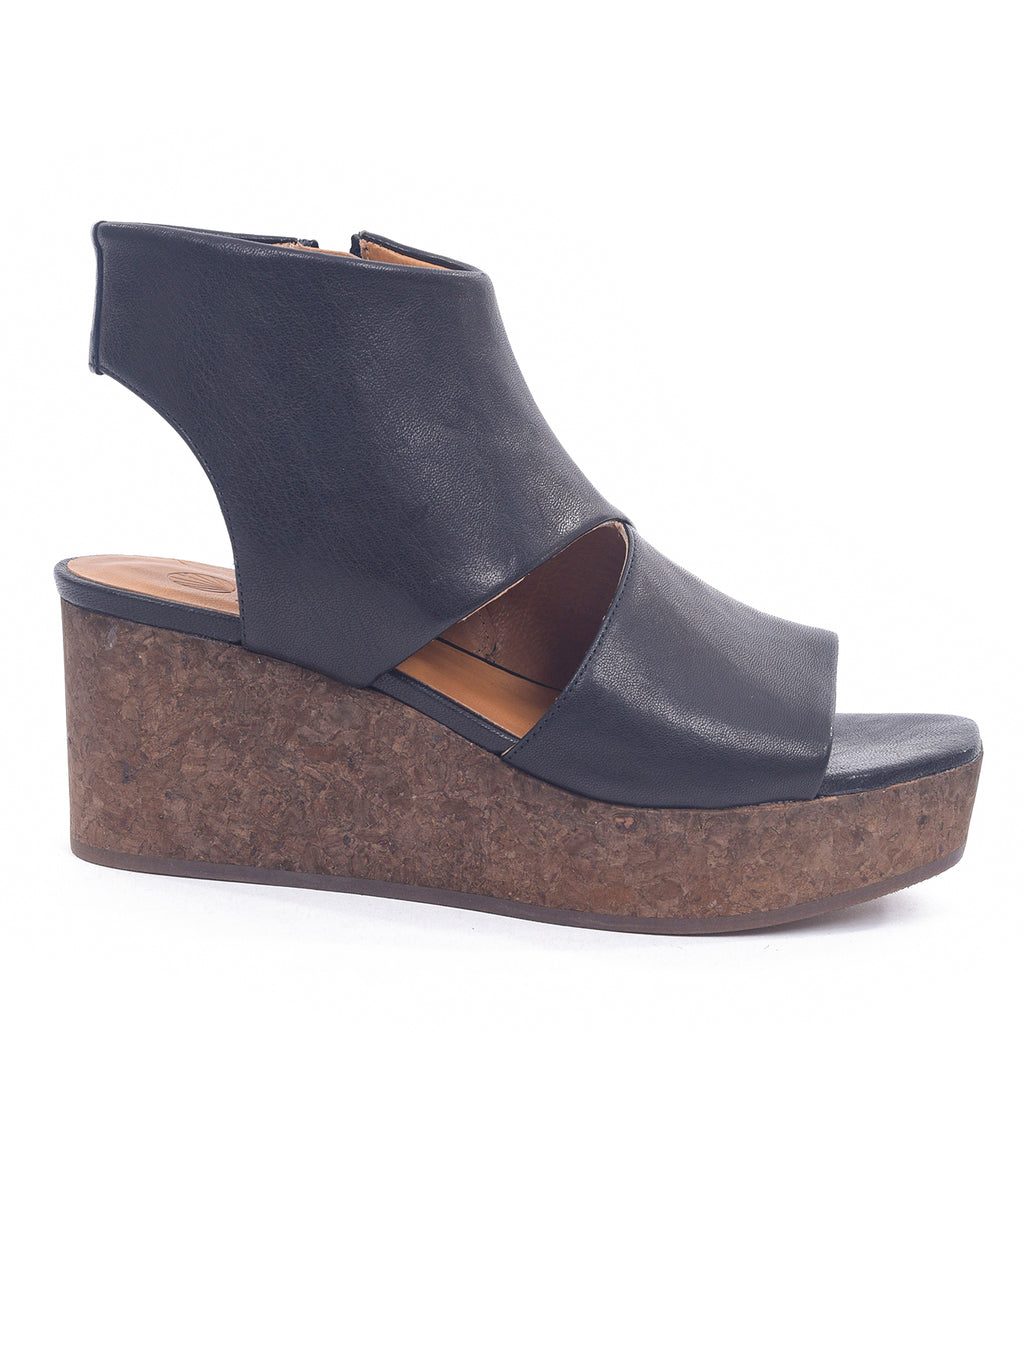 Coclico Marcy Cork Wedge, Napa Black